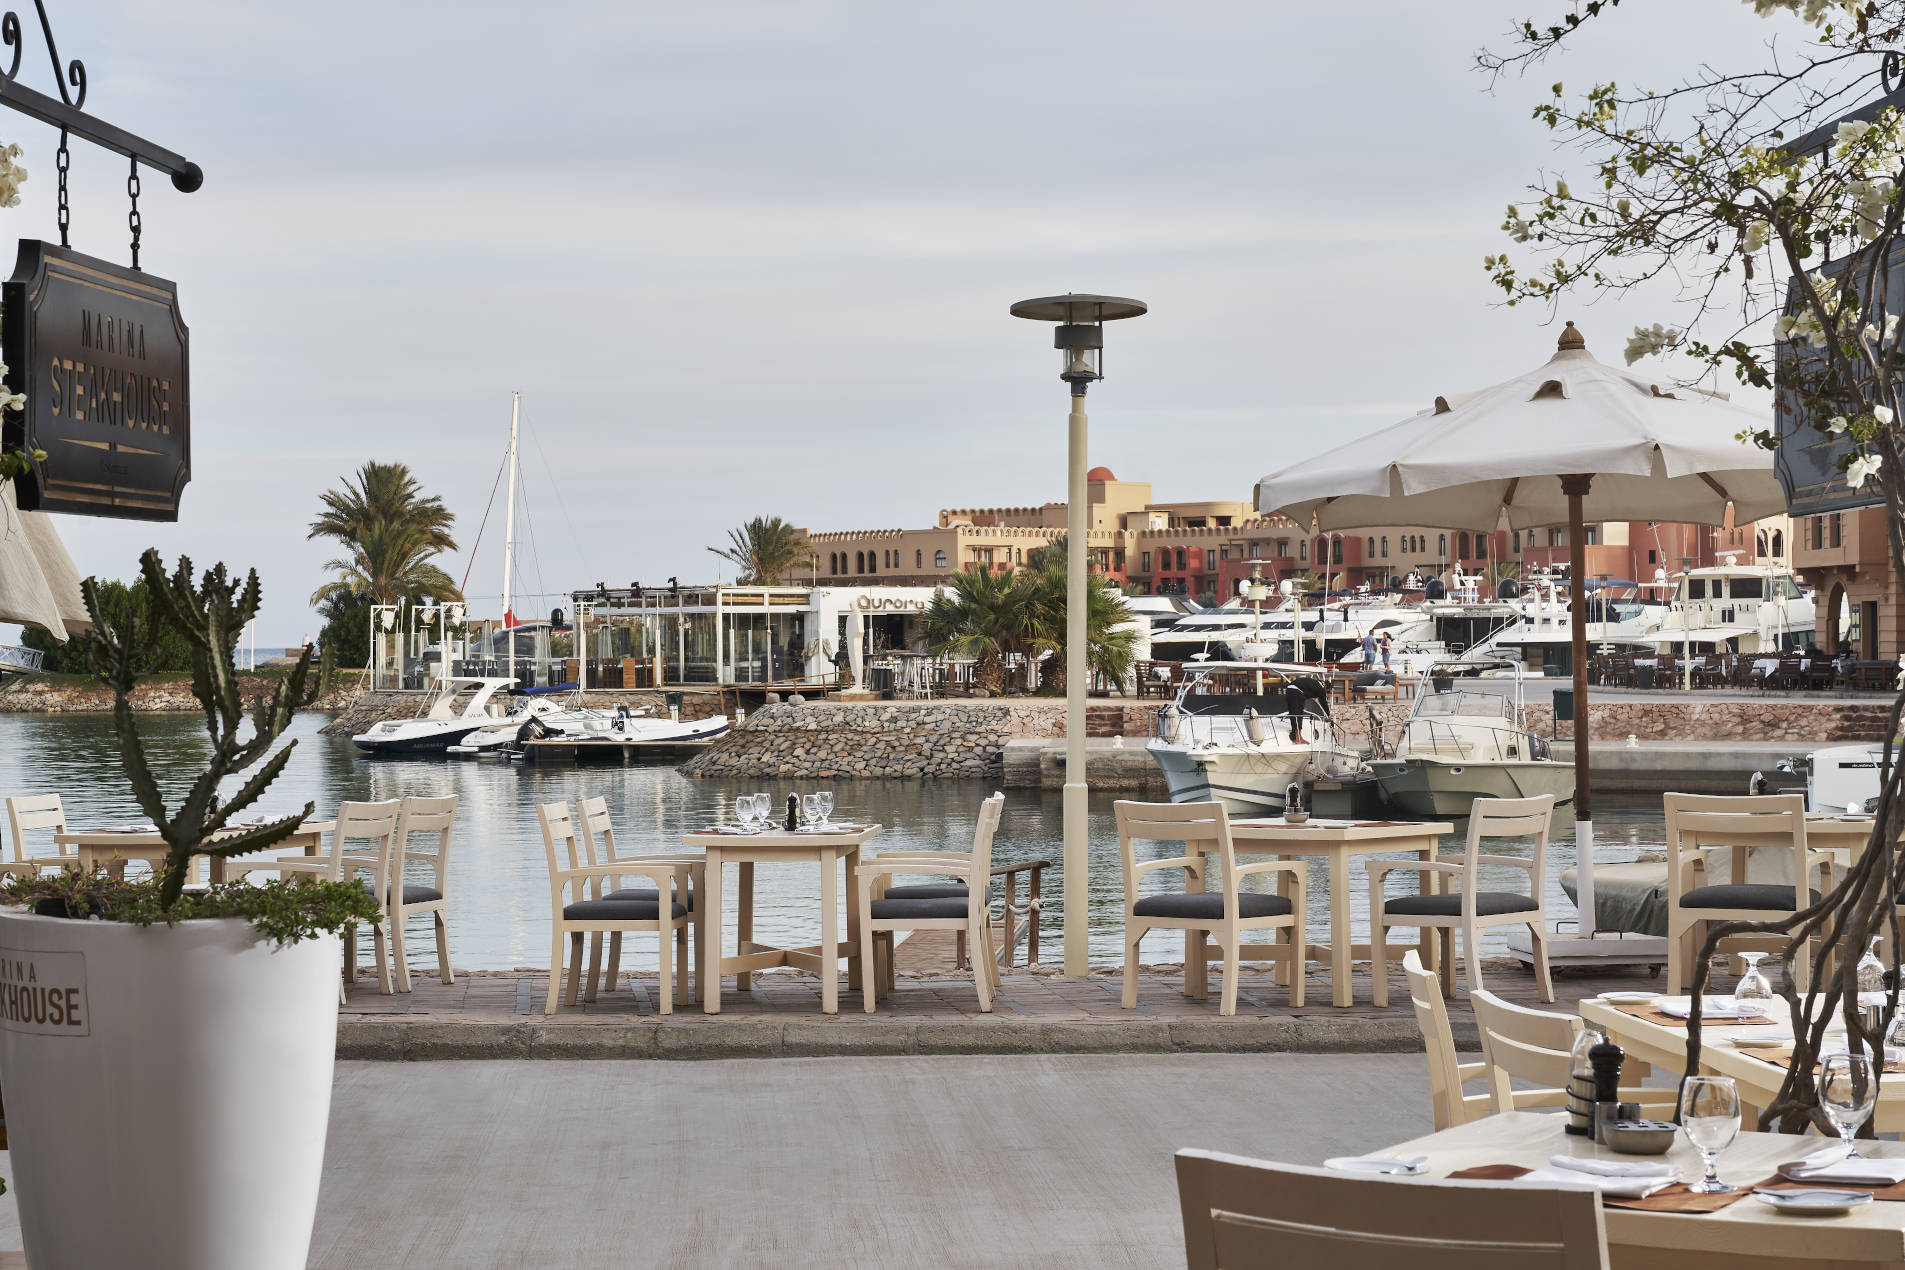 Outdoor Marina Sitting area of The Marina Steakhouse , the restaurant of Turtle's Inn and Captain's Inn Hotels